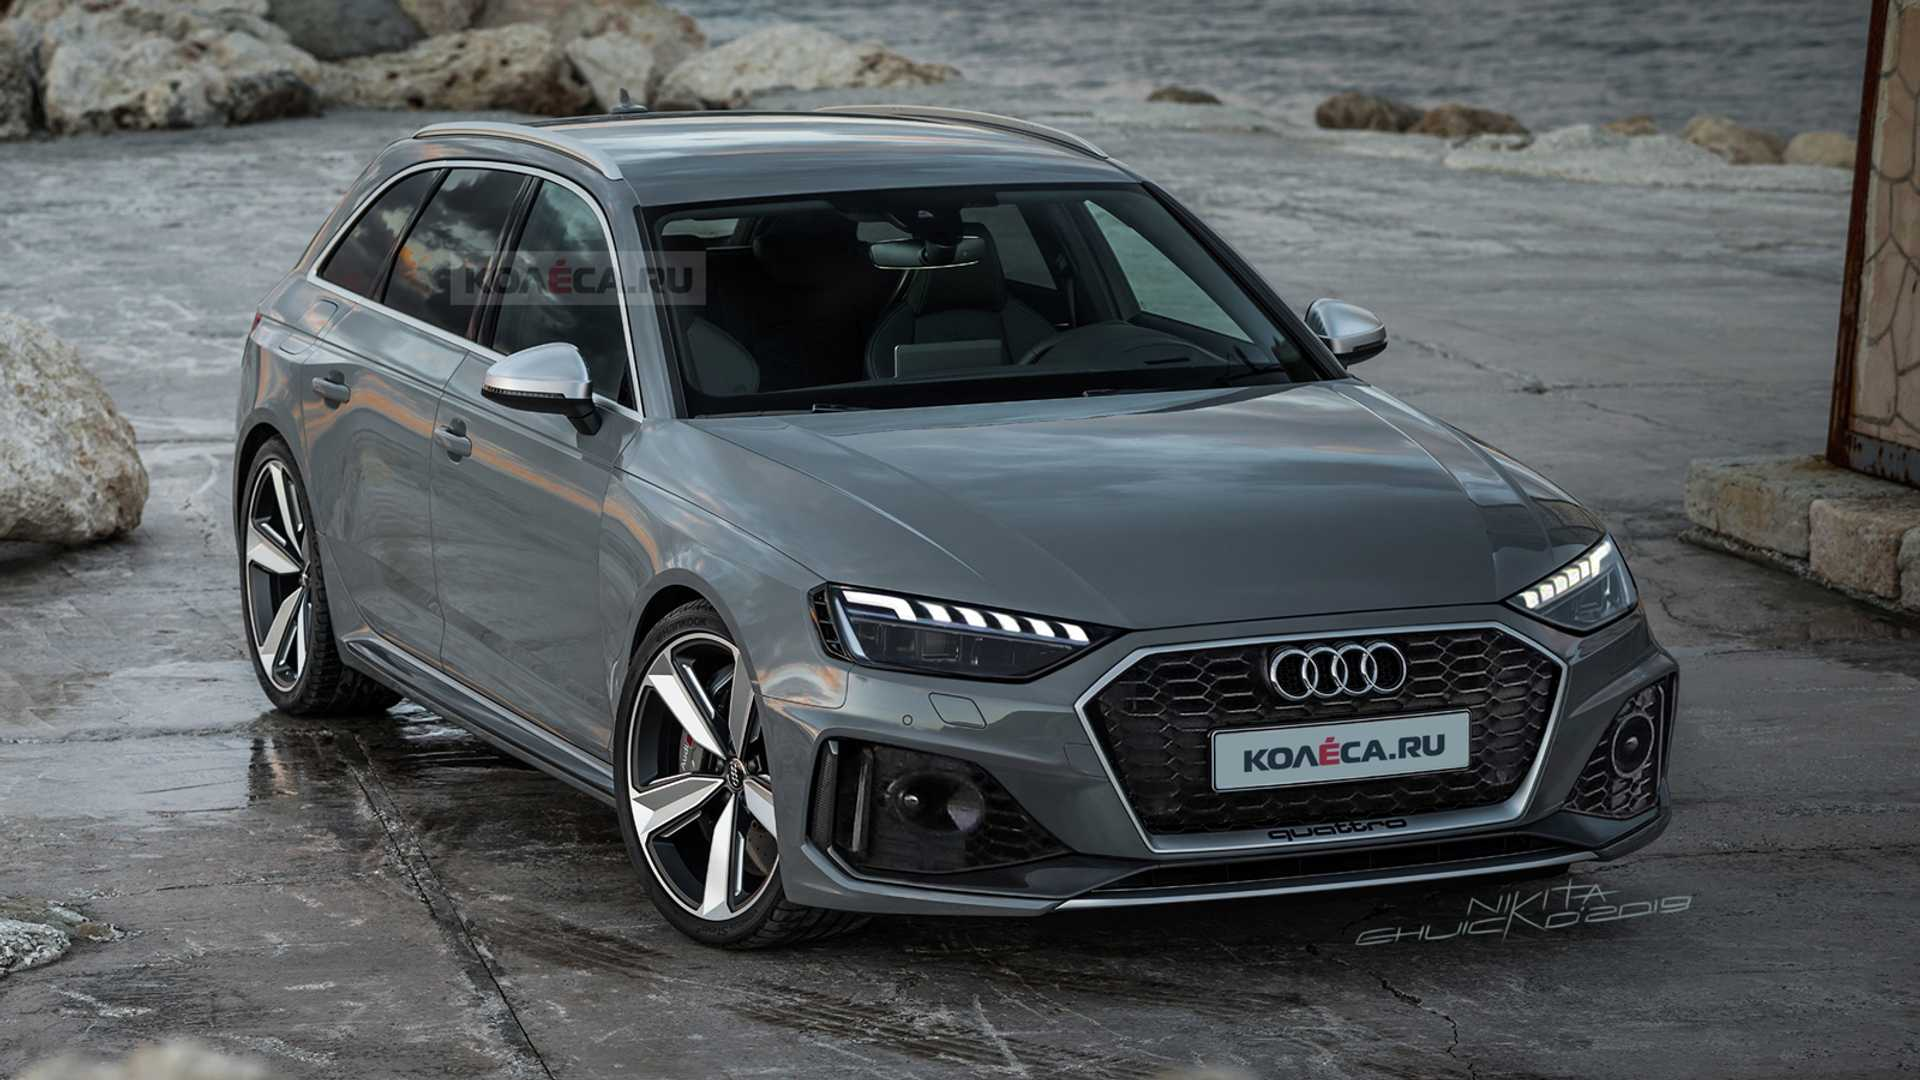 95 The Best 2020 Audi Rs4 Pricing